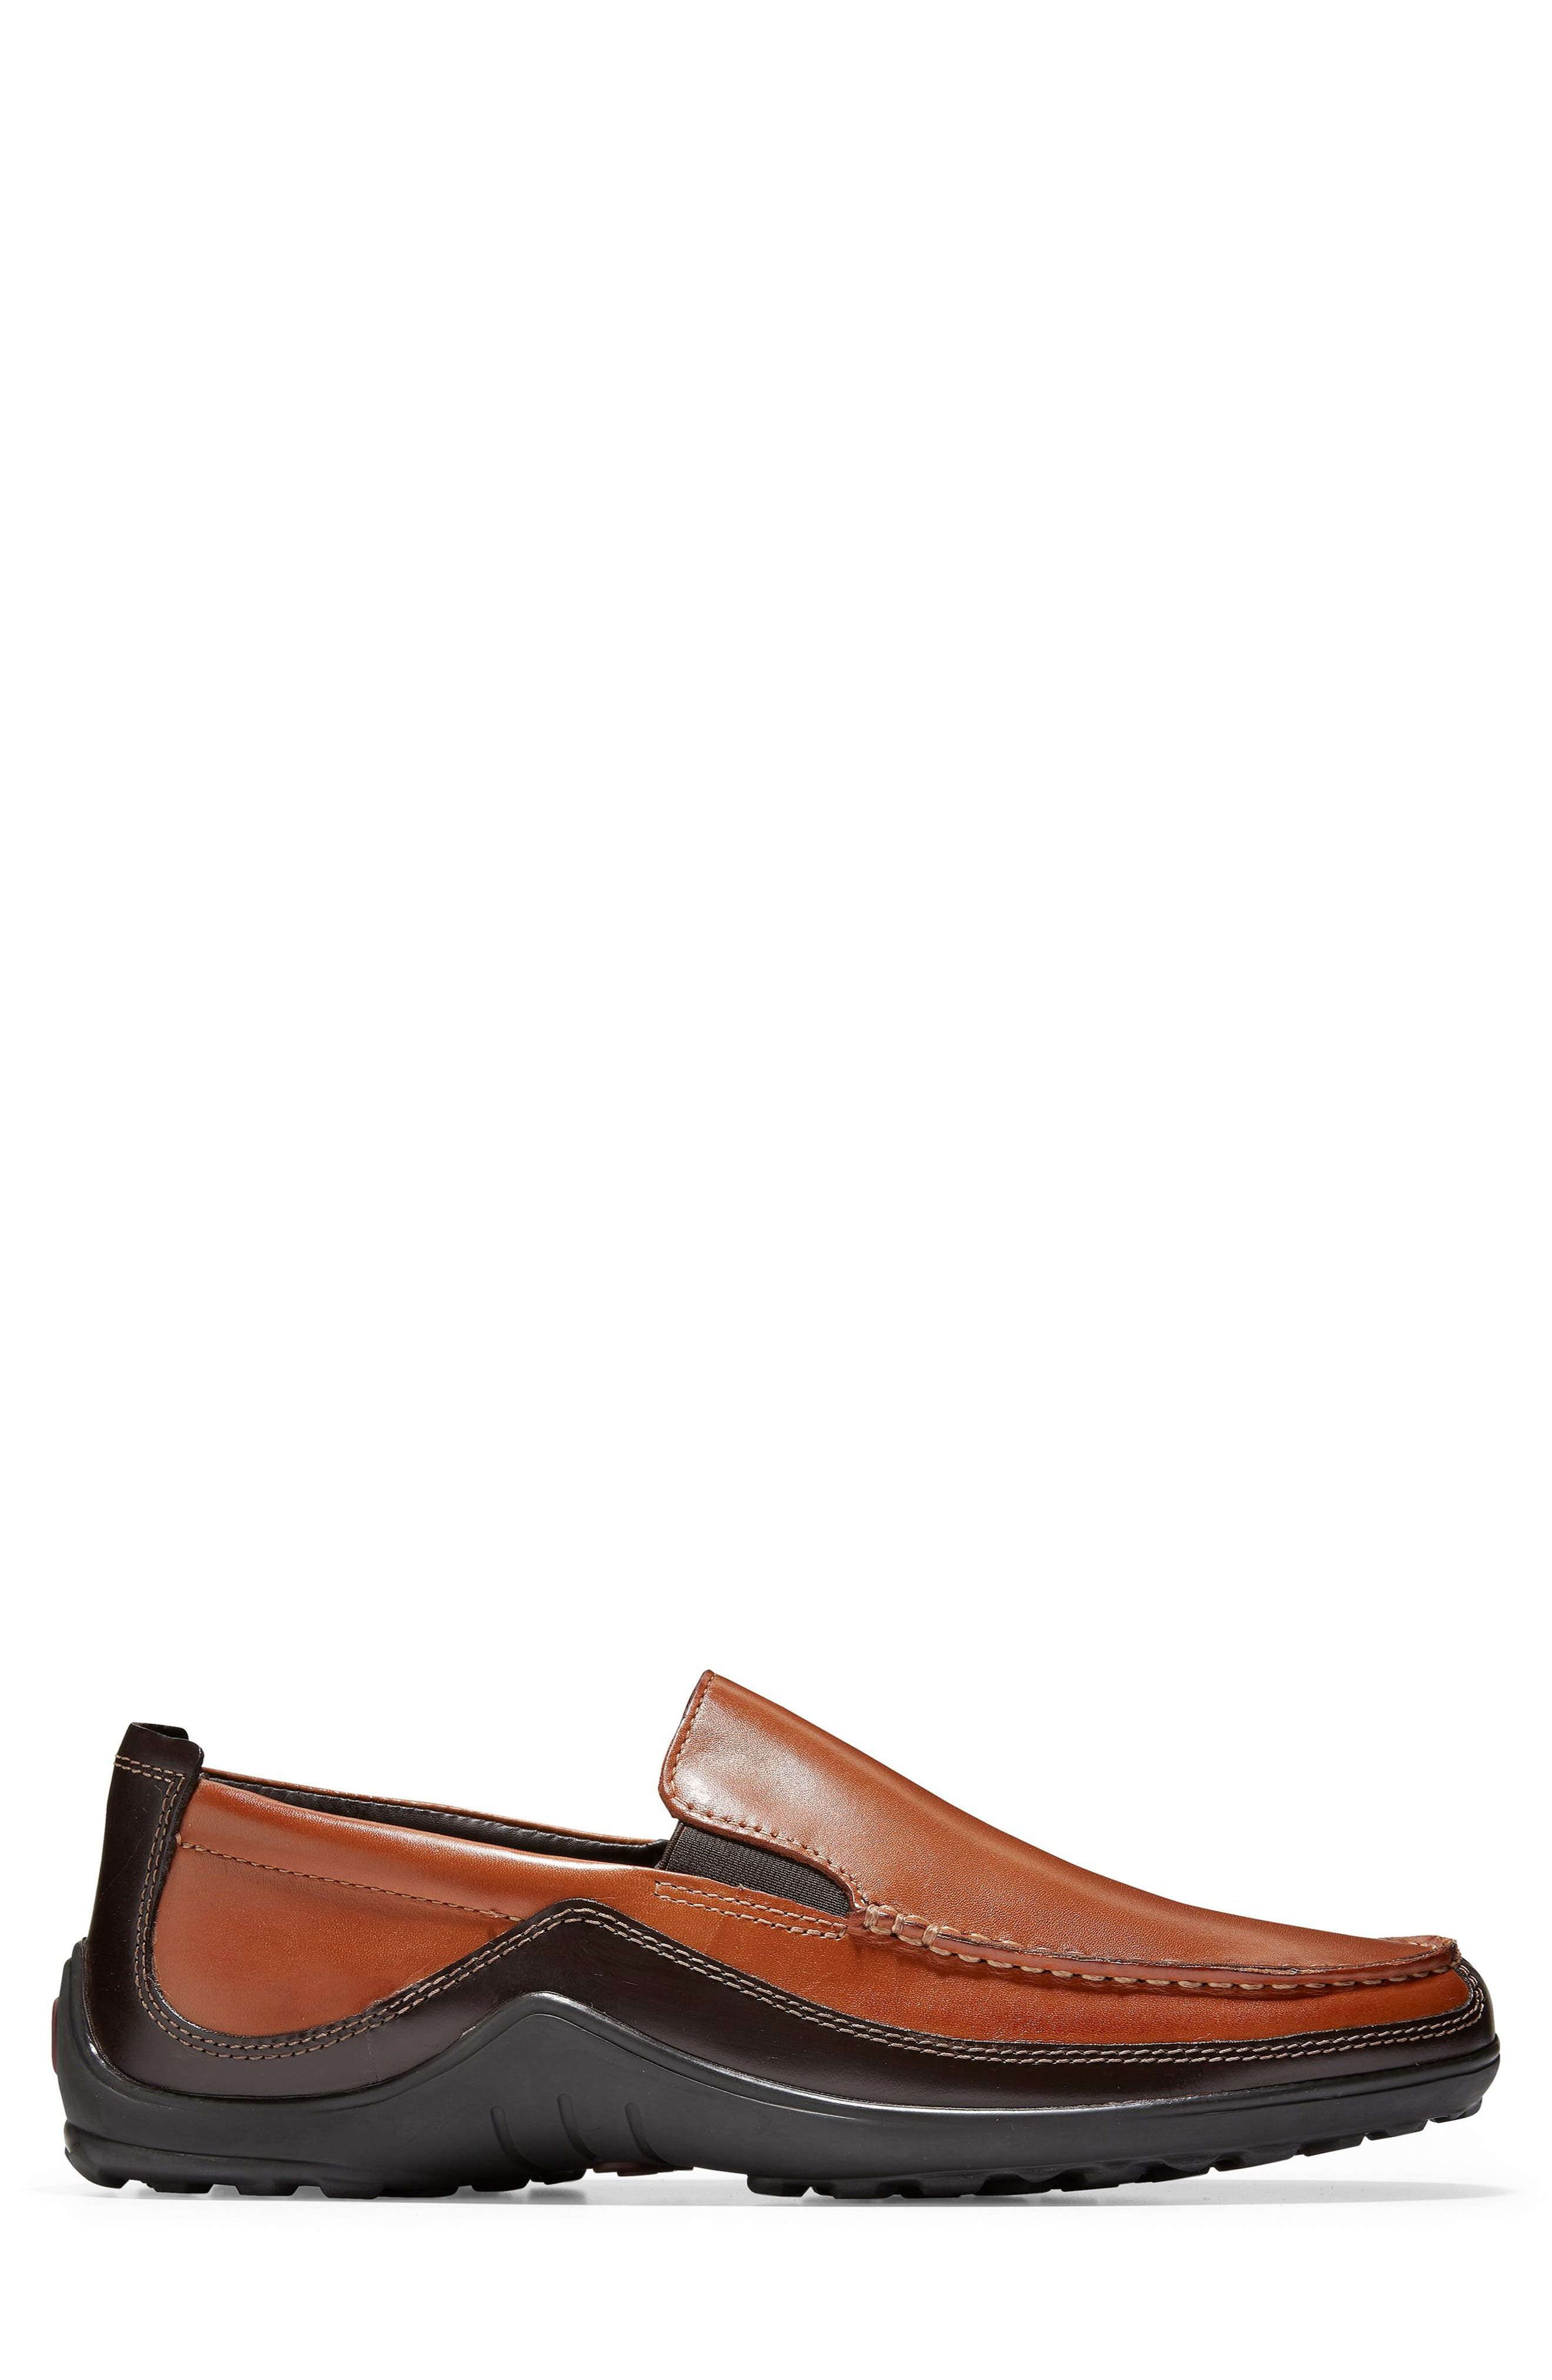 COLE HAAN, 'Tucker Venetian' Loafer, Alternate thumbnail 4, color, TAN